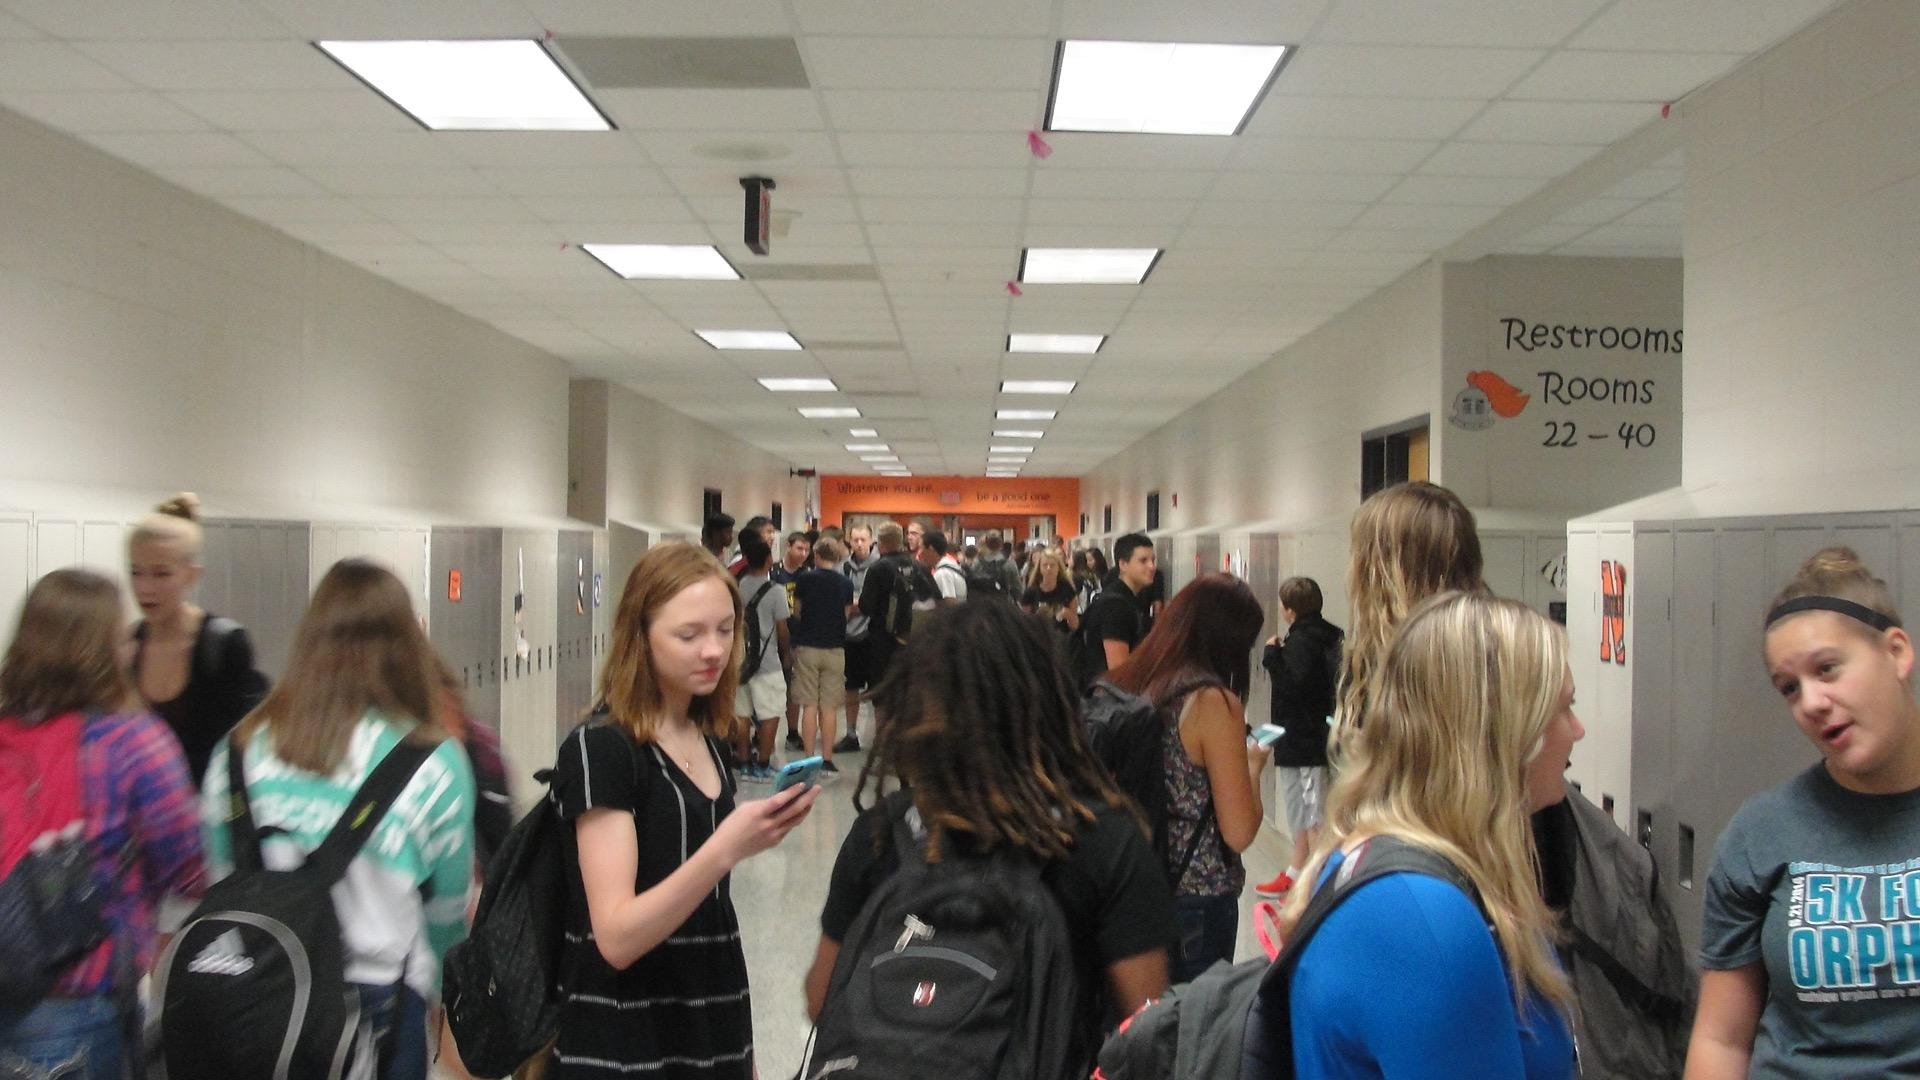 The senior hallway is filled with student before the first bell rings. (Sept. 21-25)